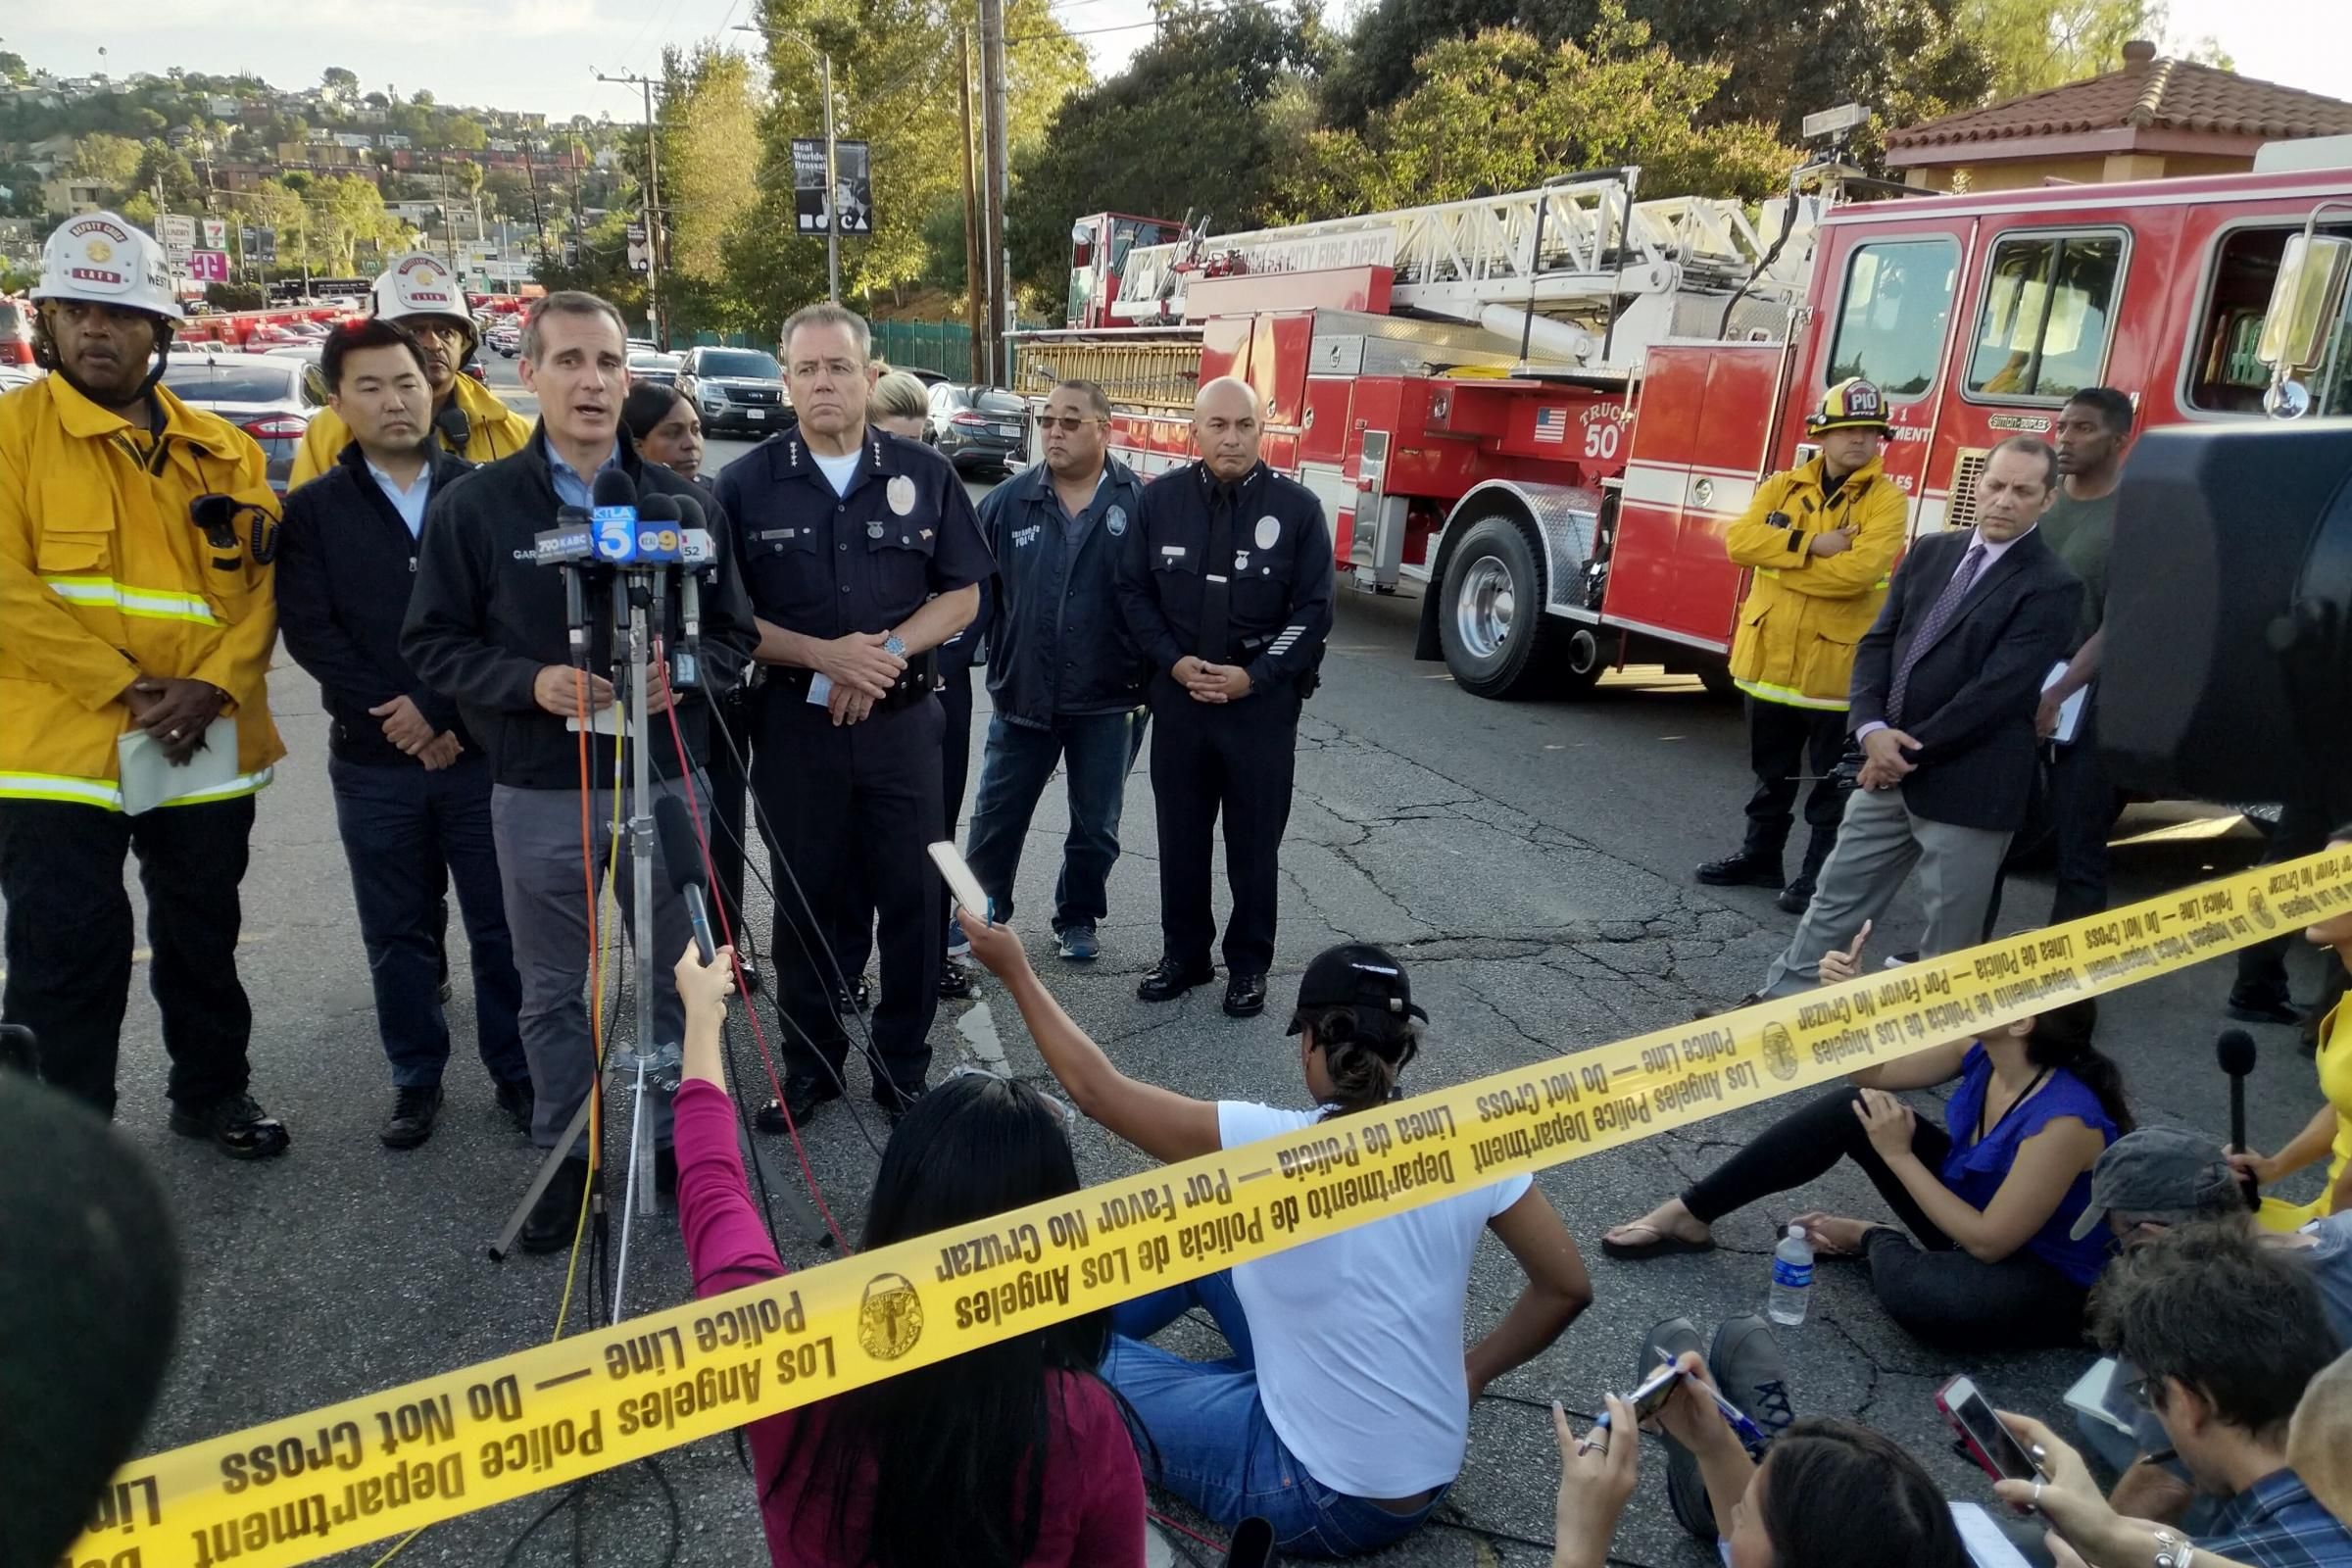 Mayor Eric Garcetti speaks during a news conference about the incident at a Trader Joe's supermarket